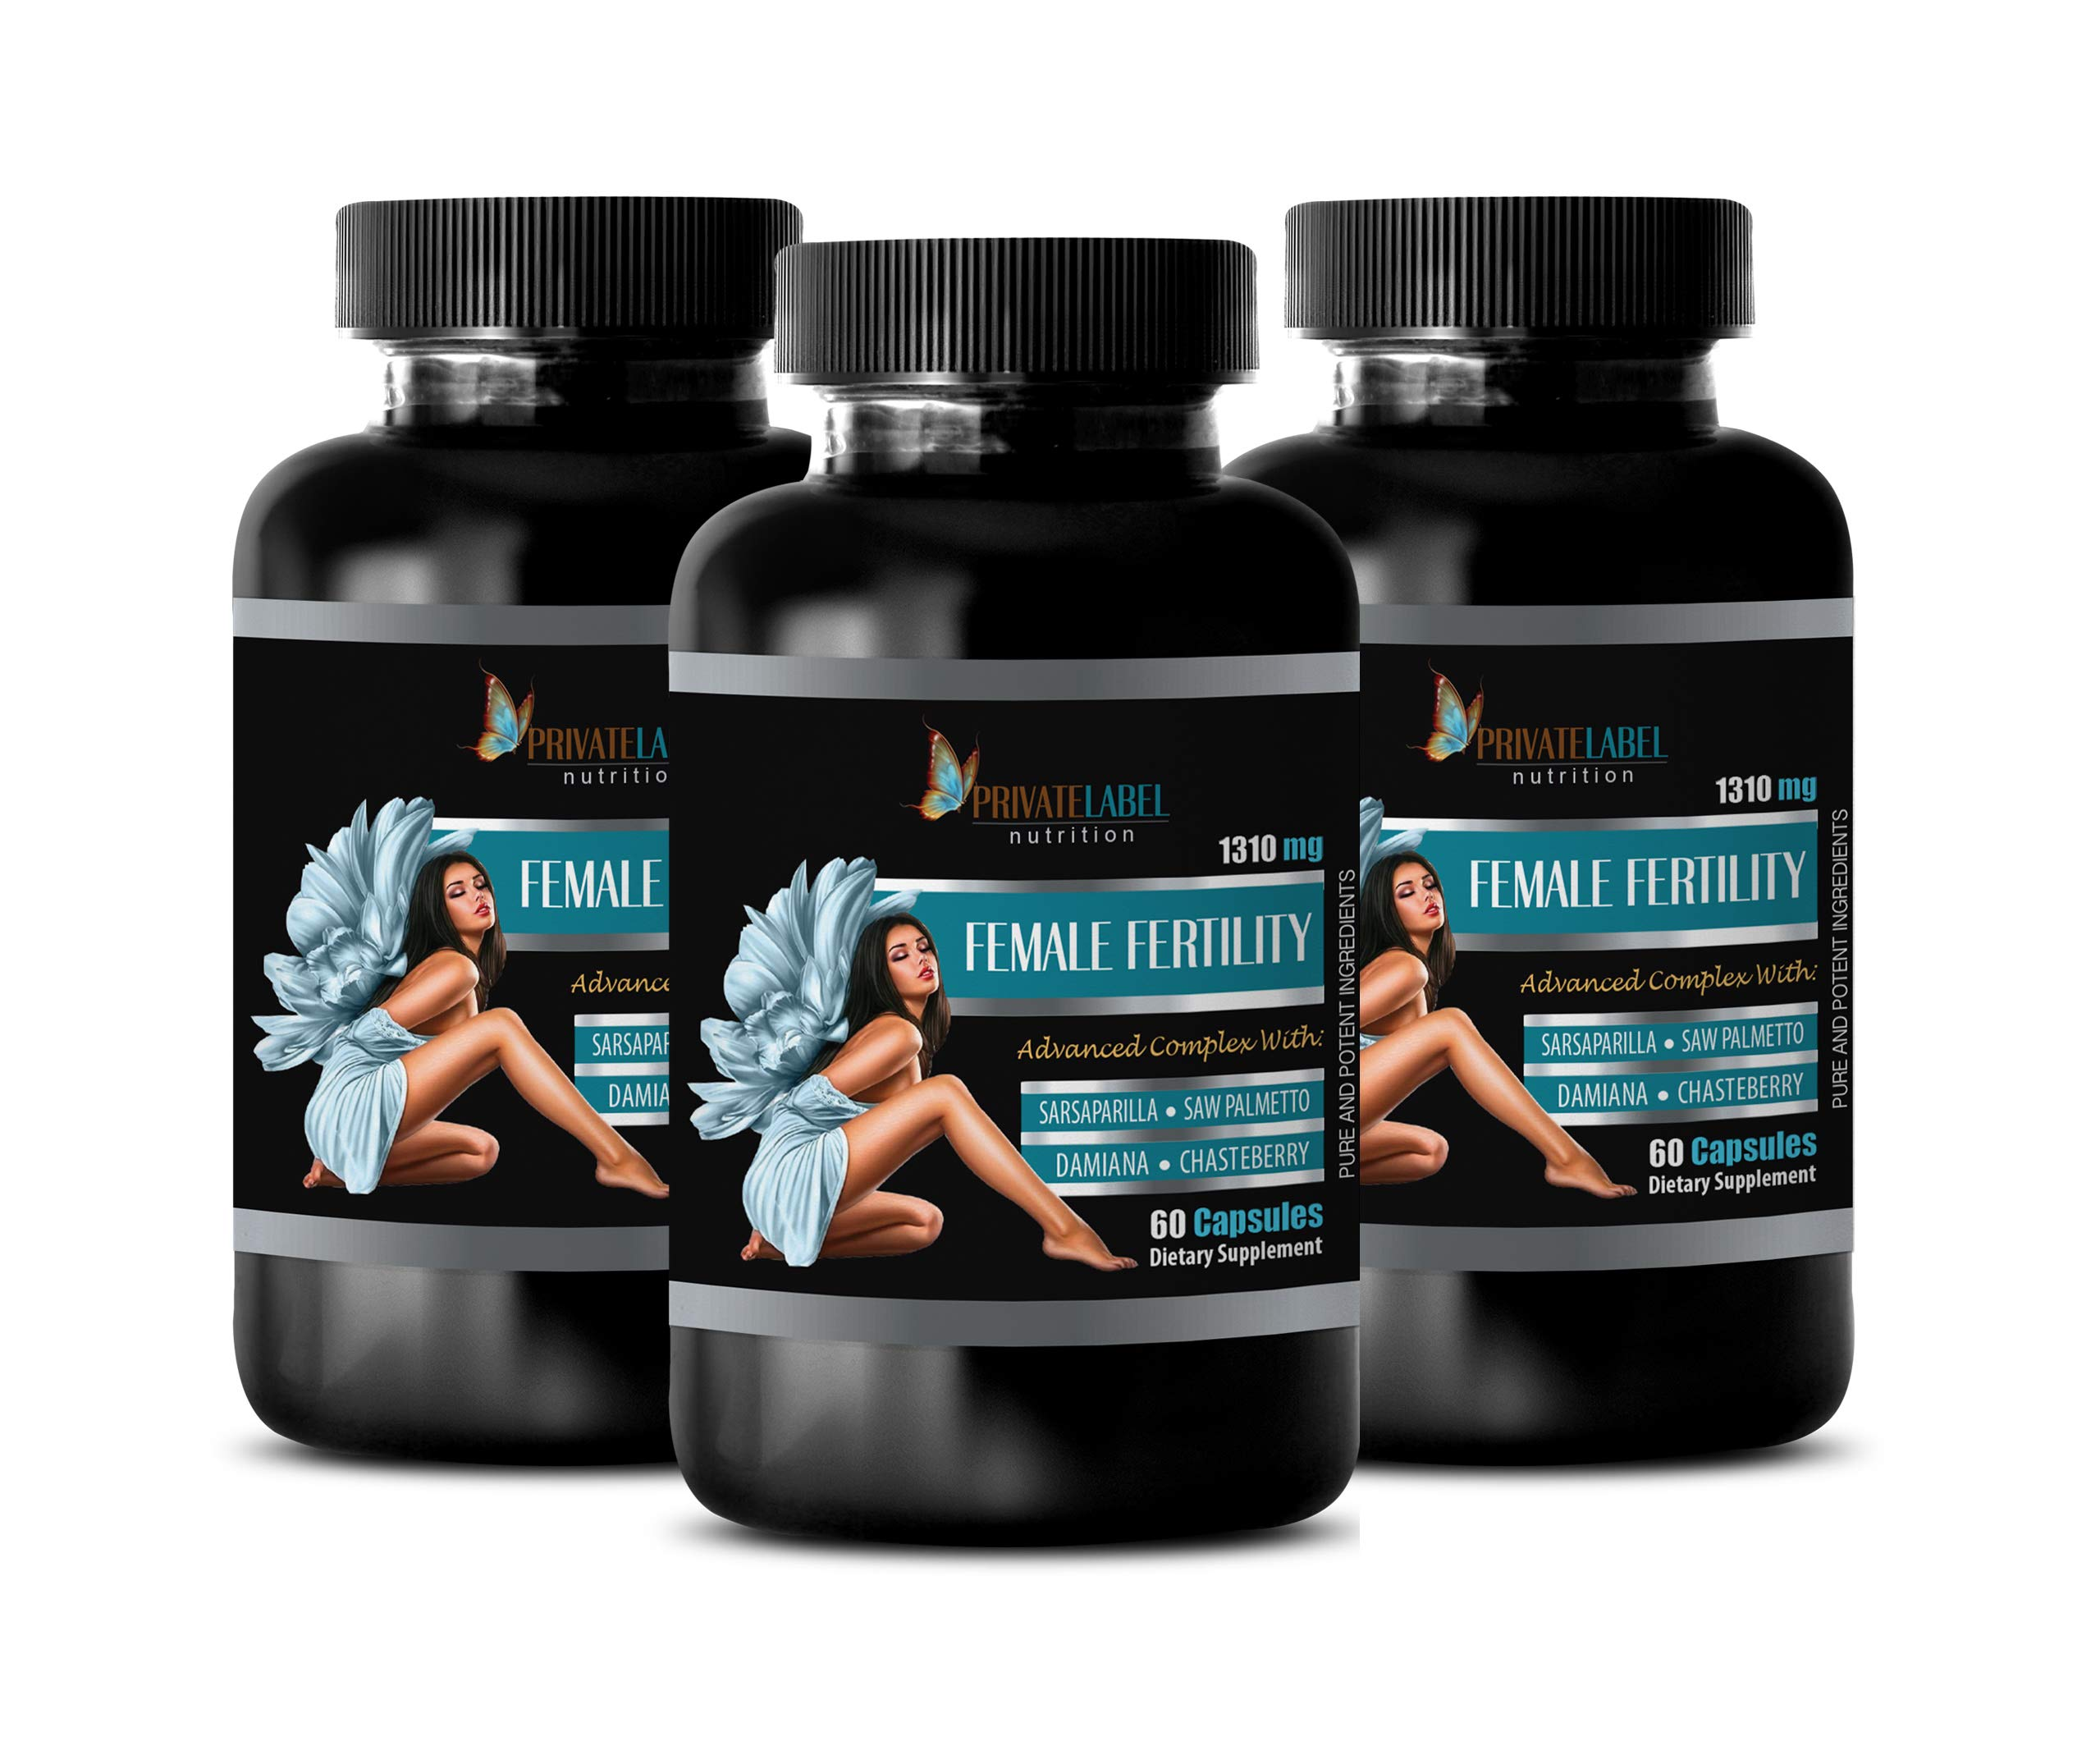 Immune System Vitamins for Women - Female Fertility Advanced Complex - Saw Palmetto Supplements for Women - 3 Bottles 180 Capsules